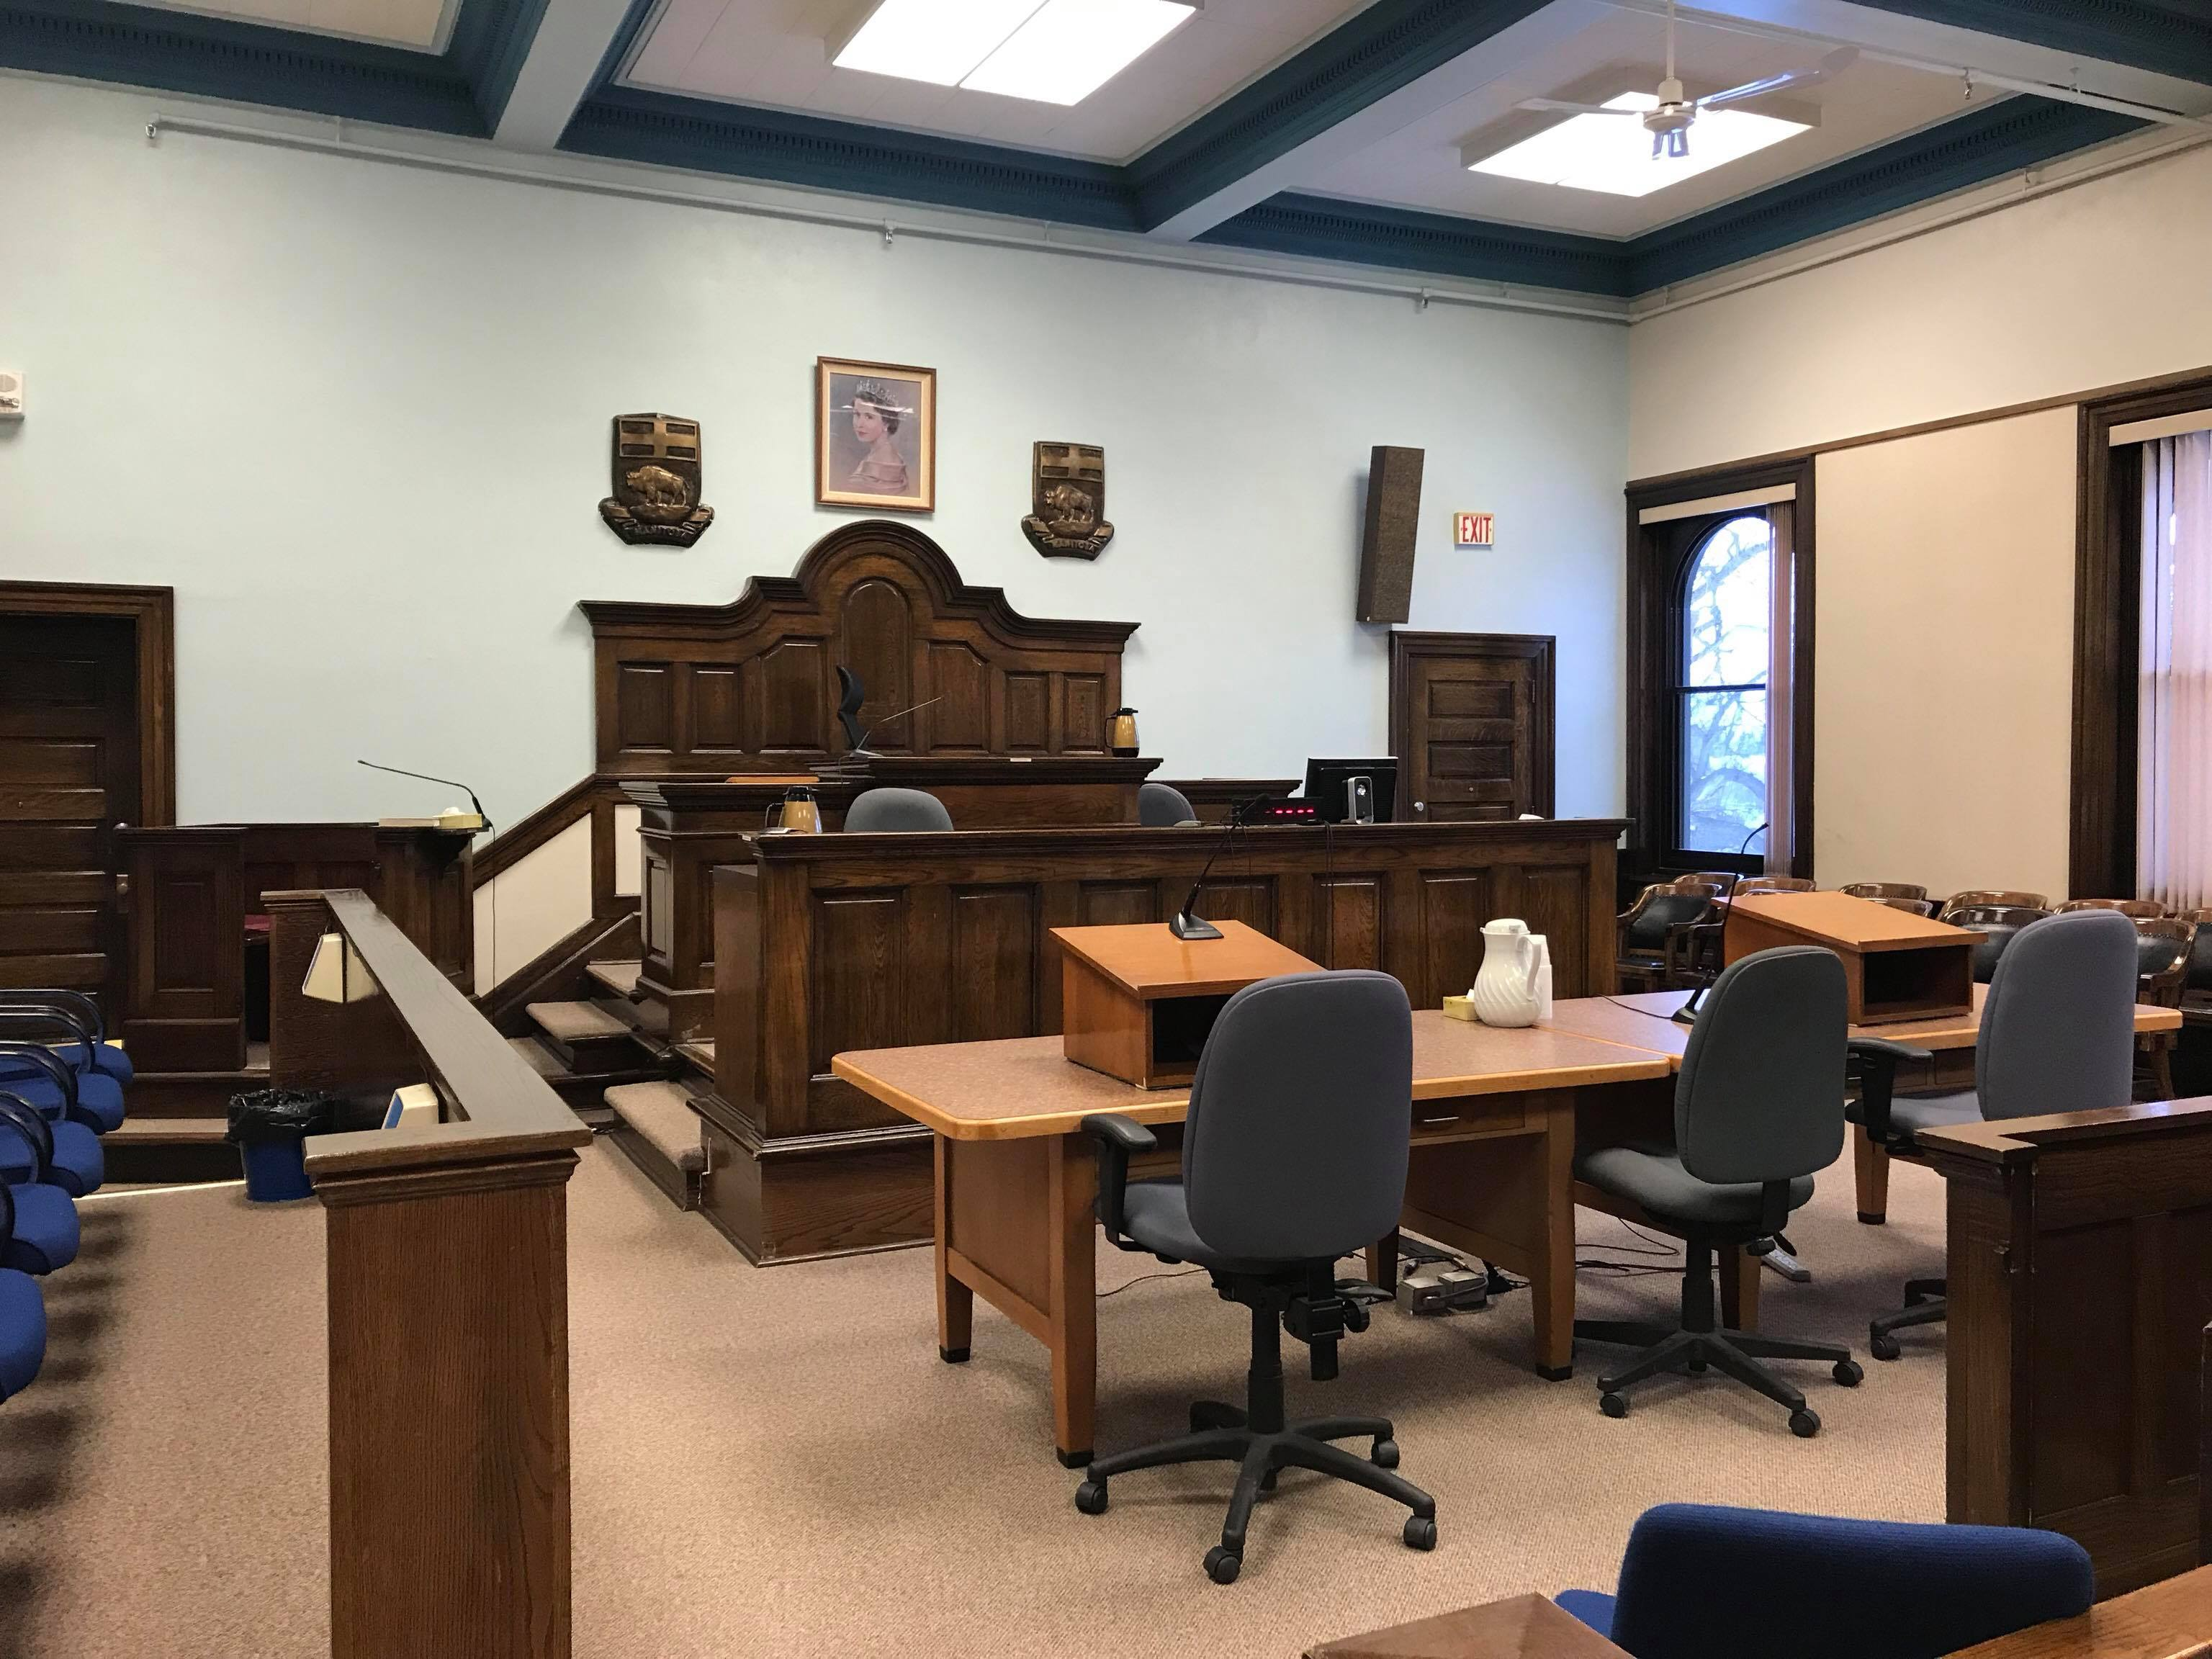 Case Of Man From RM Of Dauphin Remanded To Sept. 8